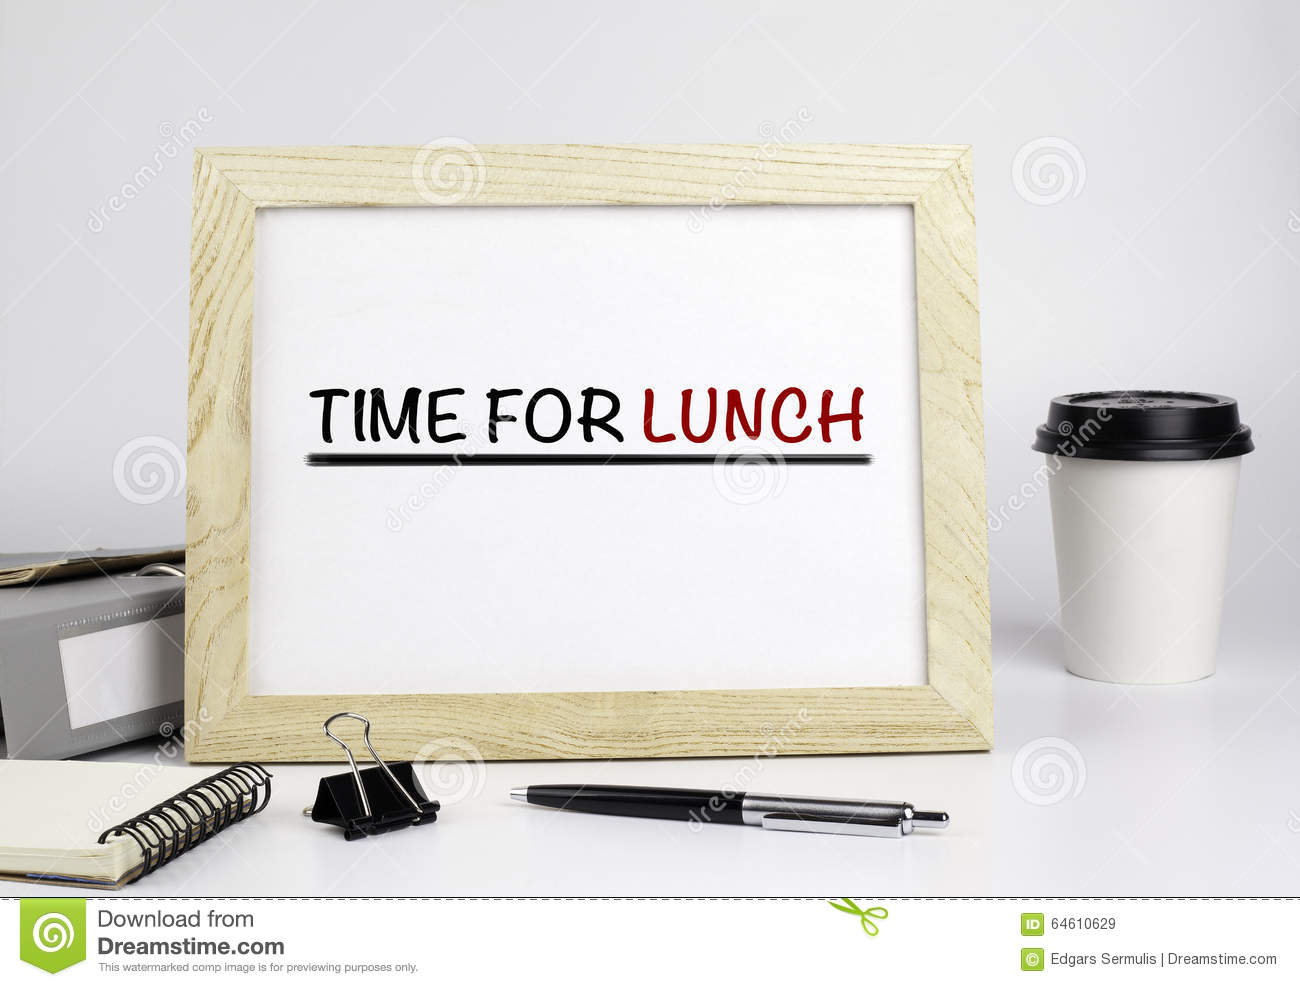 Office table with wooden frame with text - Time for lunch